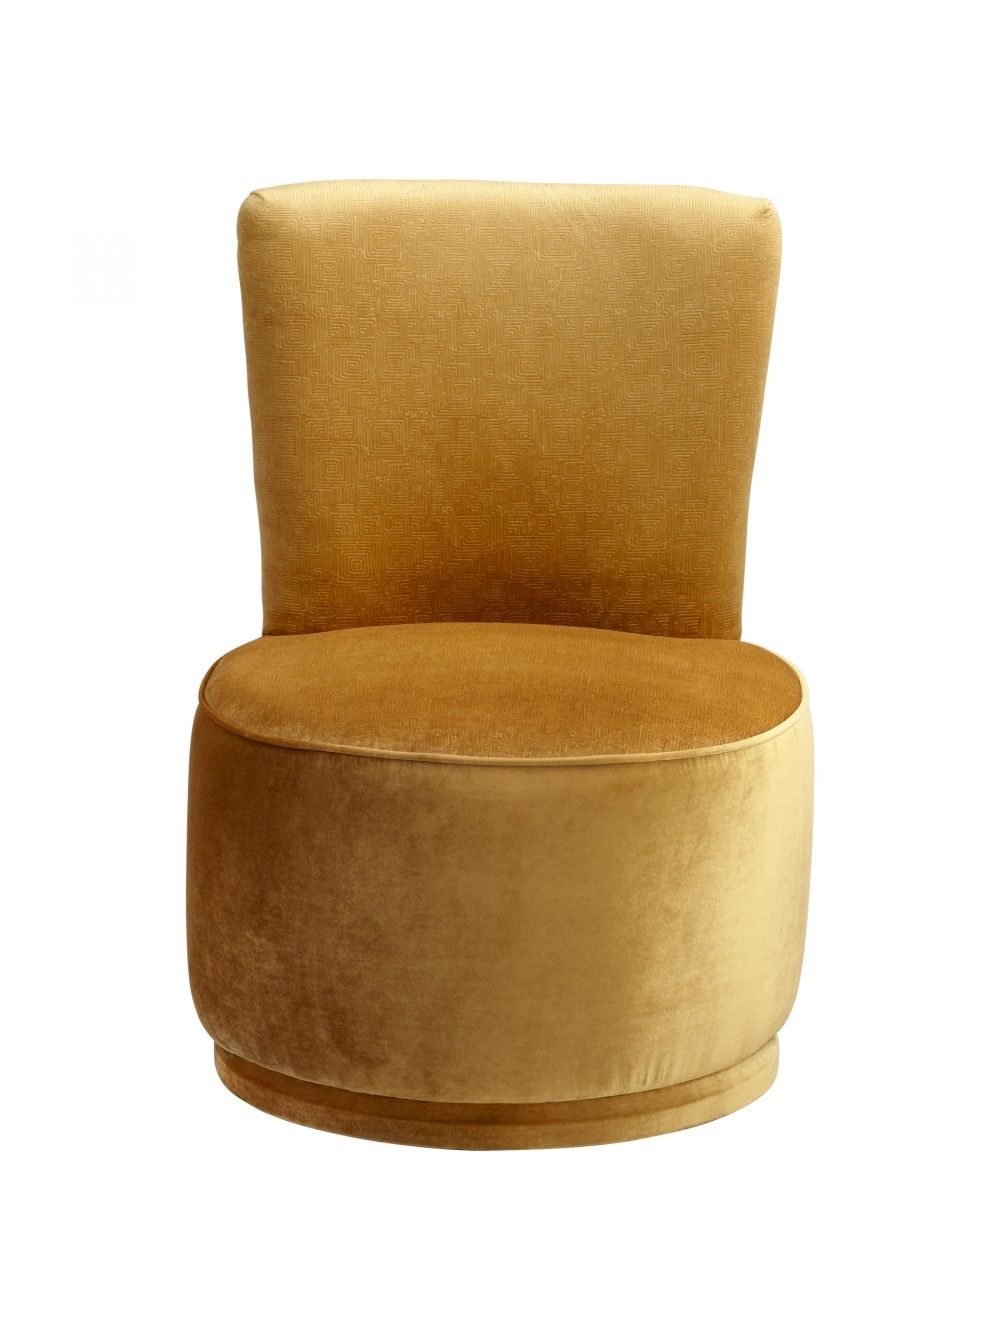 Pinsun Soul Style Interiors On Furniture I Love | Pinterest In Twirl Swivel Accent Chairs (Image 13 of 25)